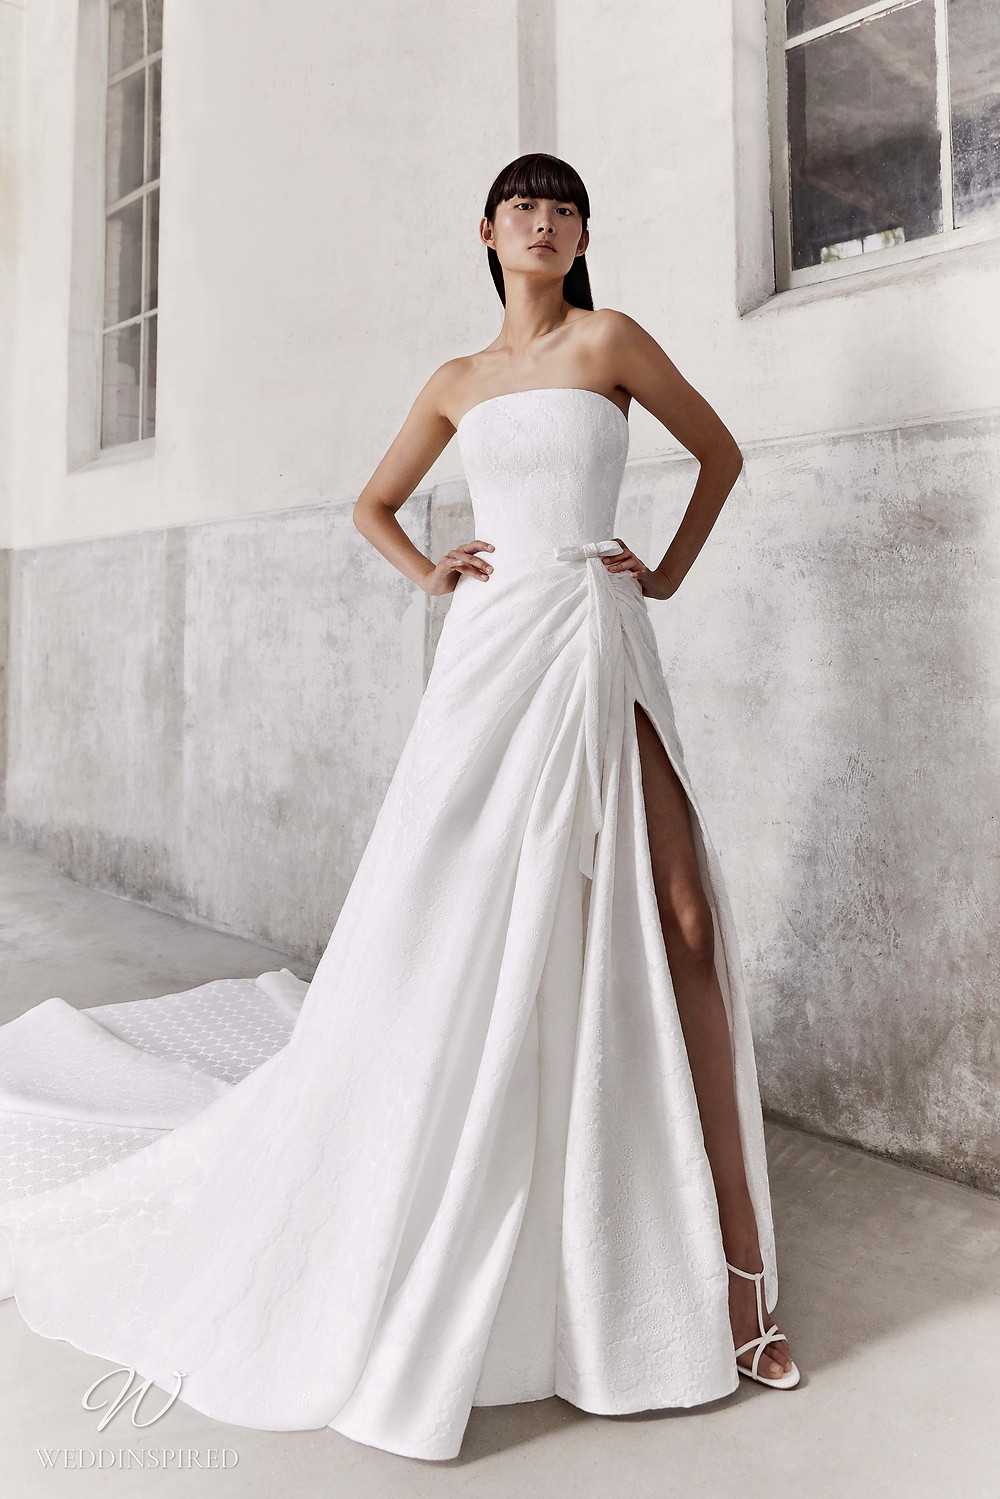 A Viktor & Rolf Fall/Winter 2021 simple strapless A-line wedding dress with a train and a high slit